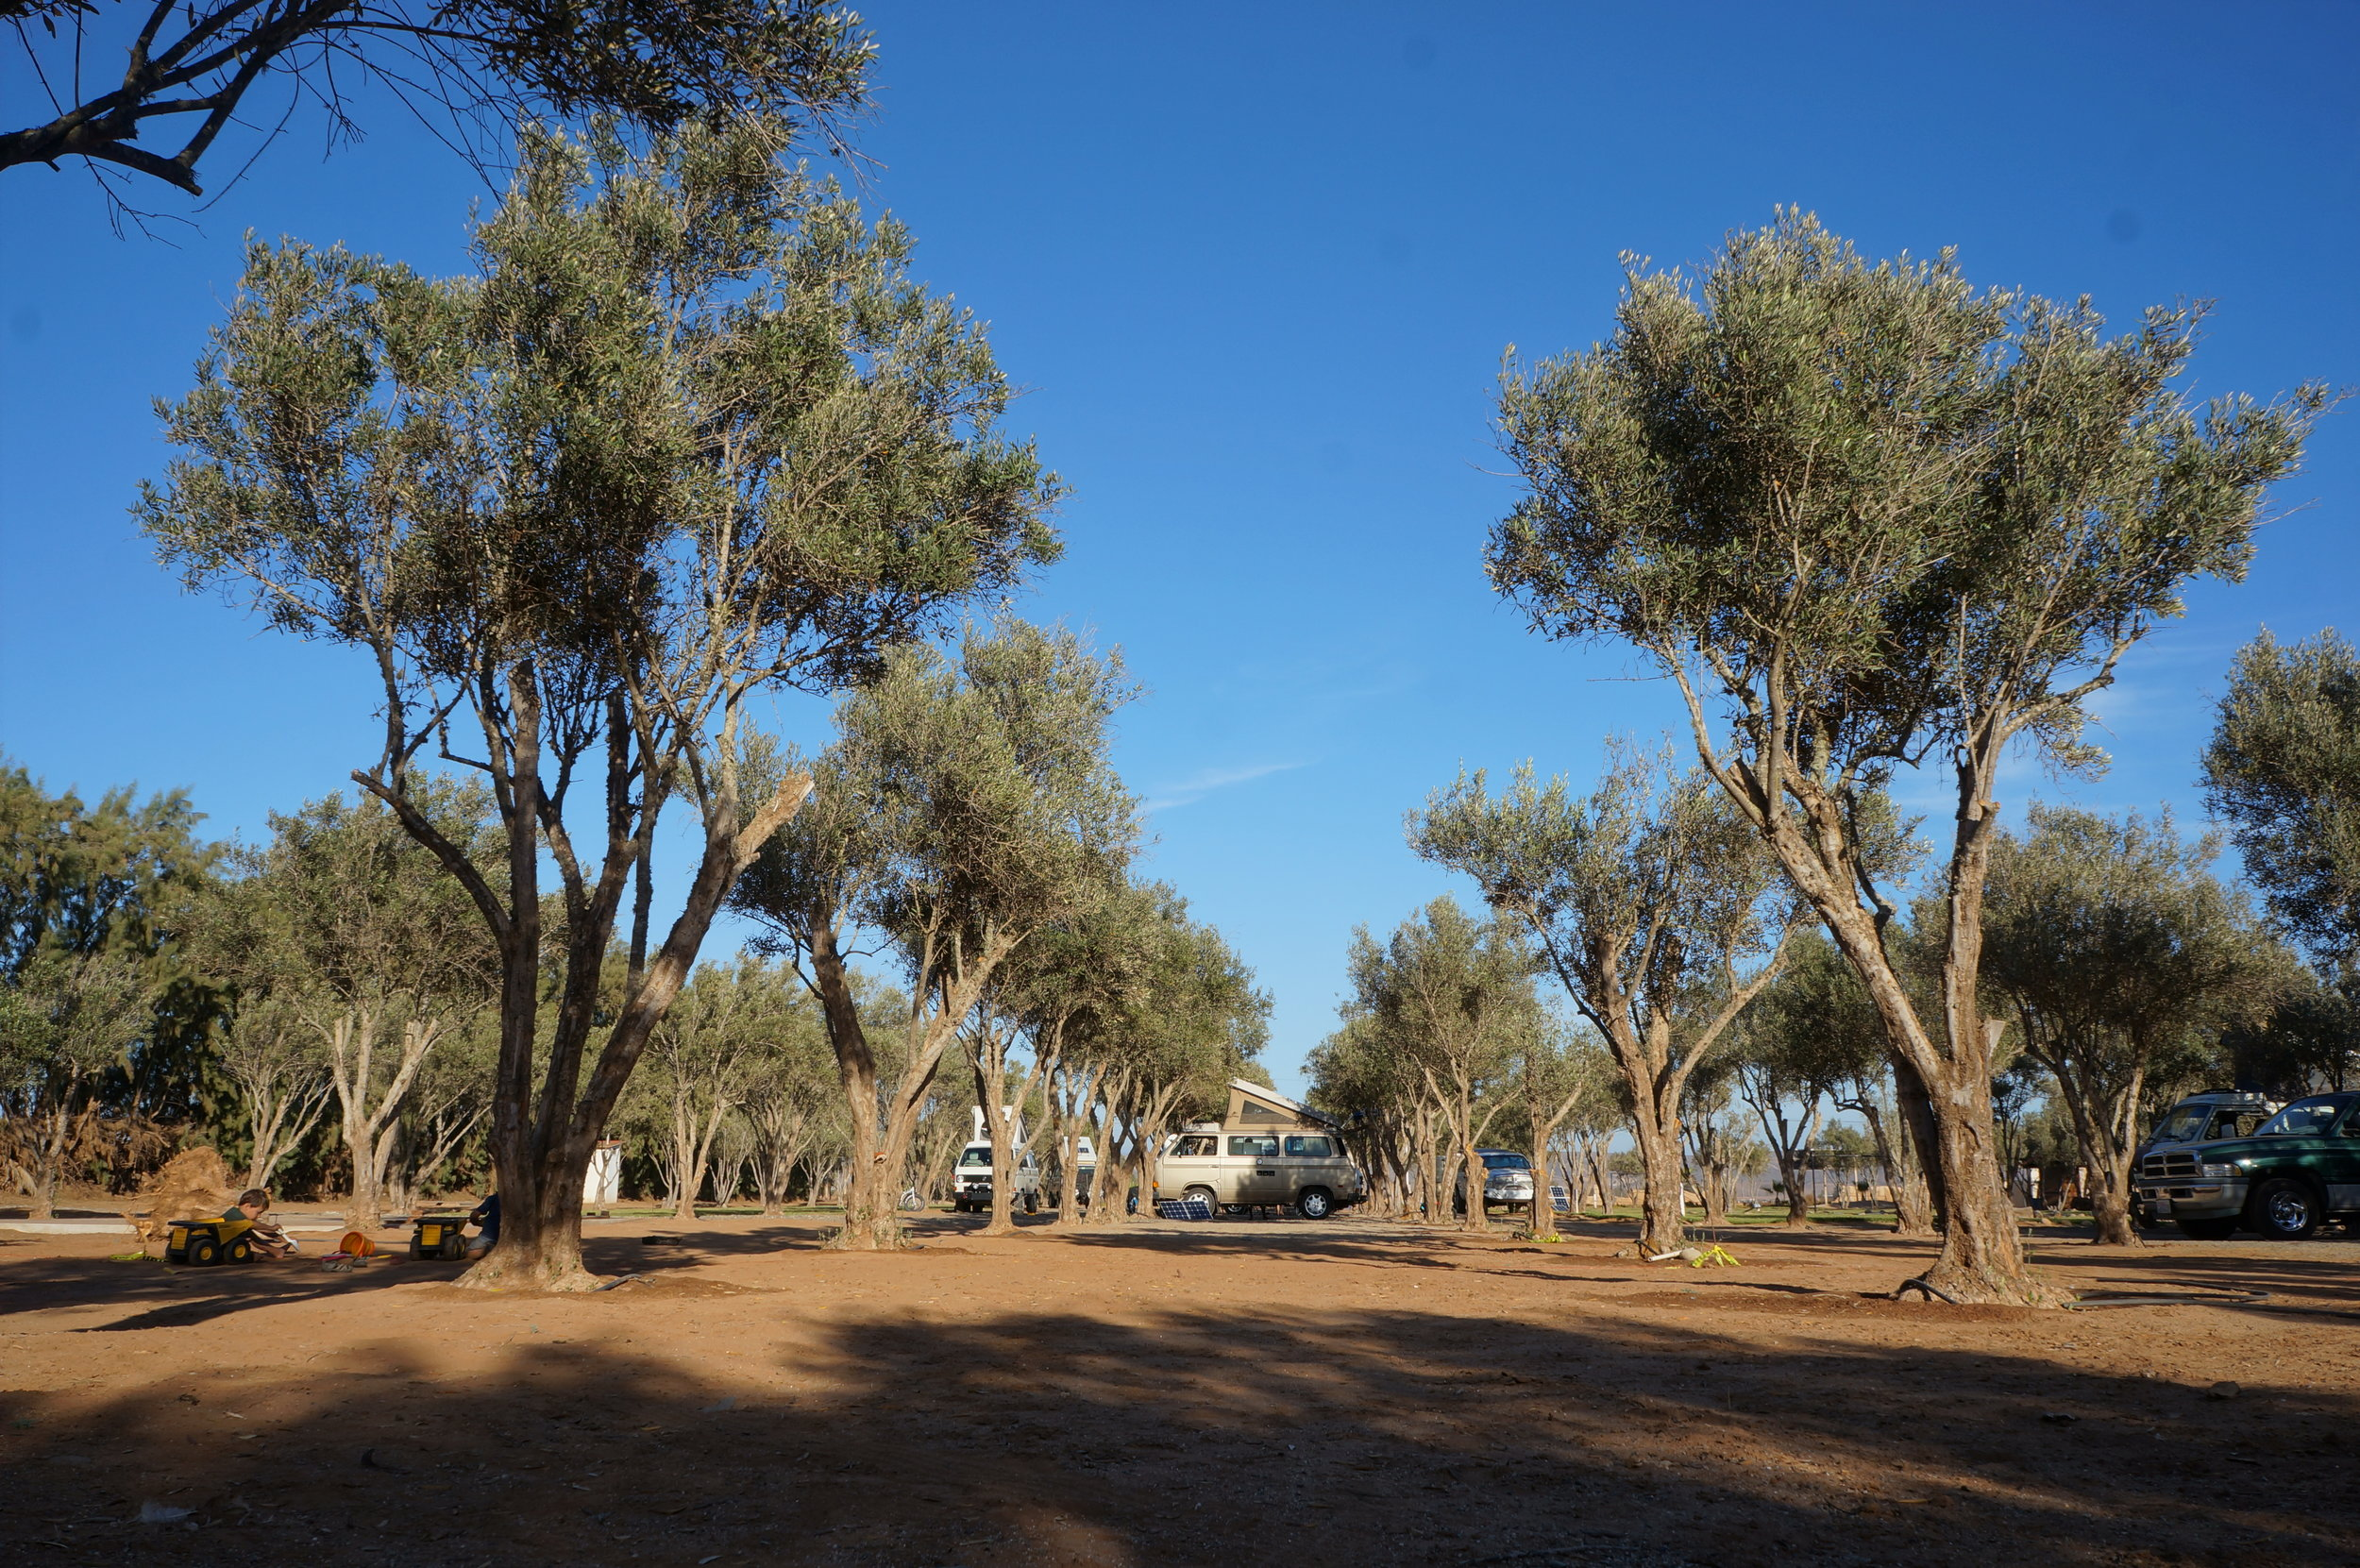 Camping among the olive trees, Los Olivos RV Park, Baja California